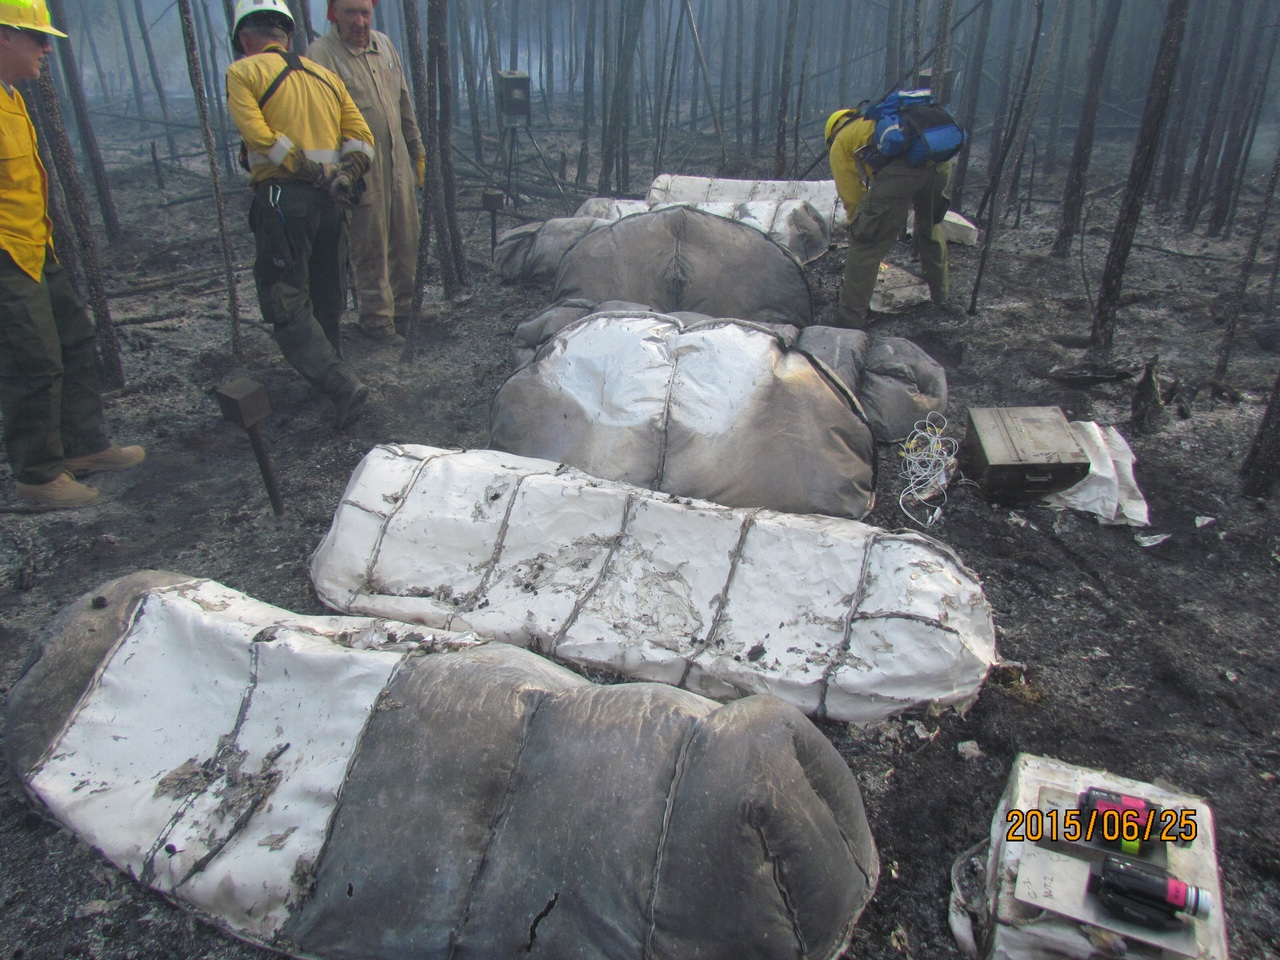 NASA Is Testing Next-Generation Fire Shelters at a Burn Site In Northern Canada & NASA Is Testing Next-Generation Fire Shelters at a Burn Site In ...